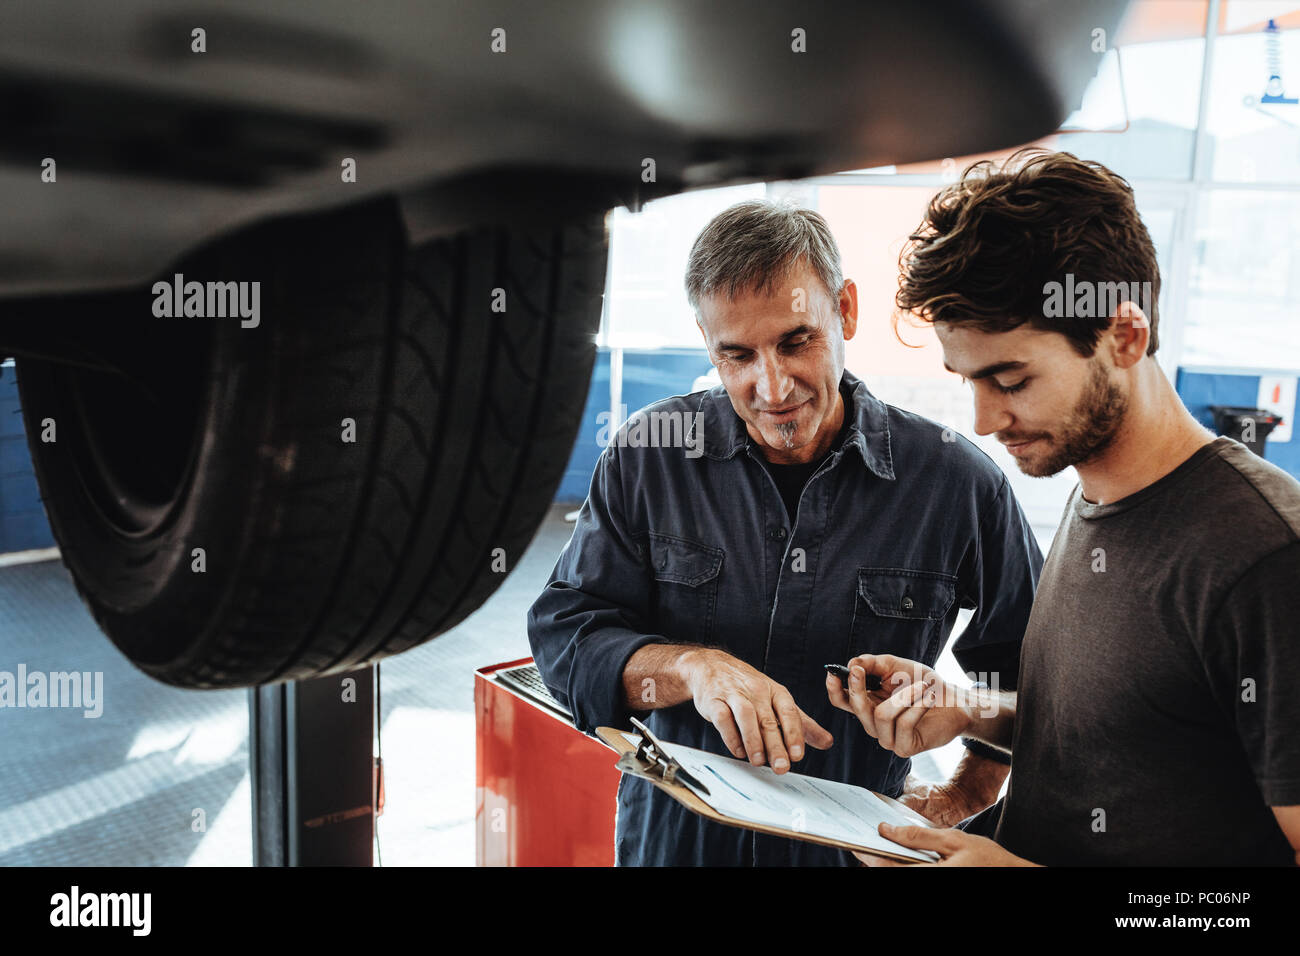 Mechanics in uniform making notes while standing by a car in auto service station. Two people working in auto garage and making a list of problems in  - Stock Image